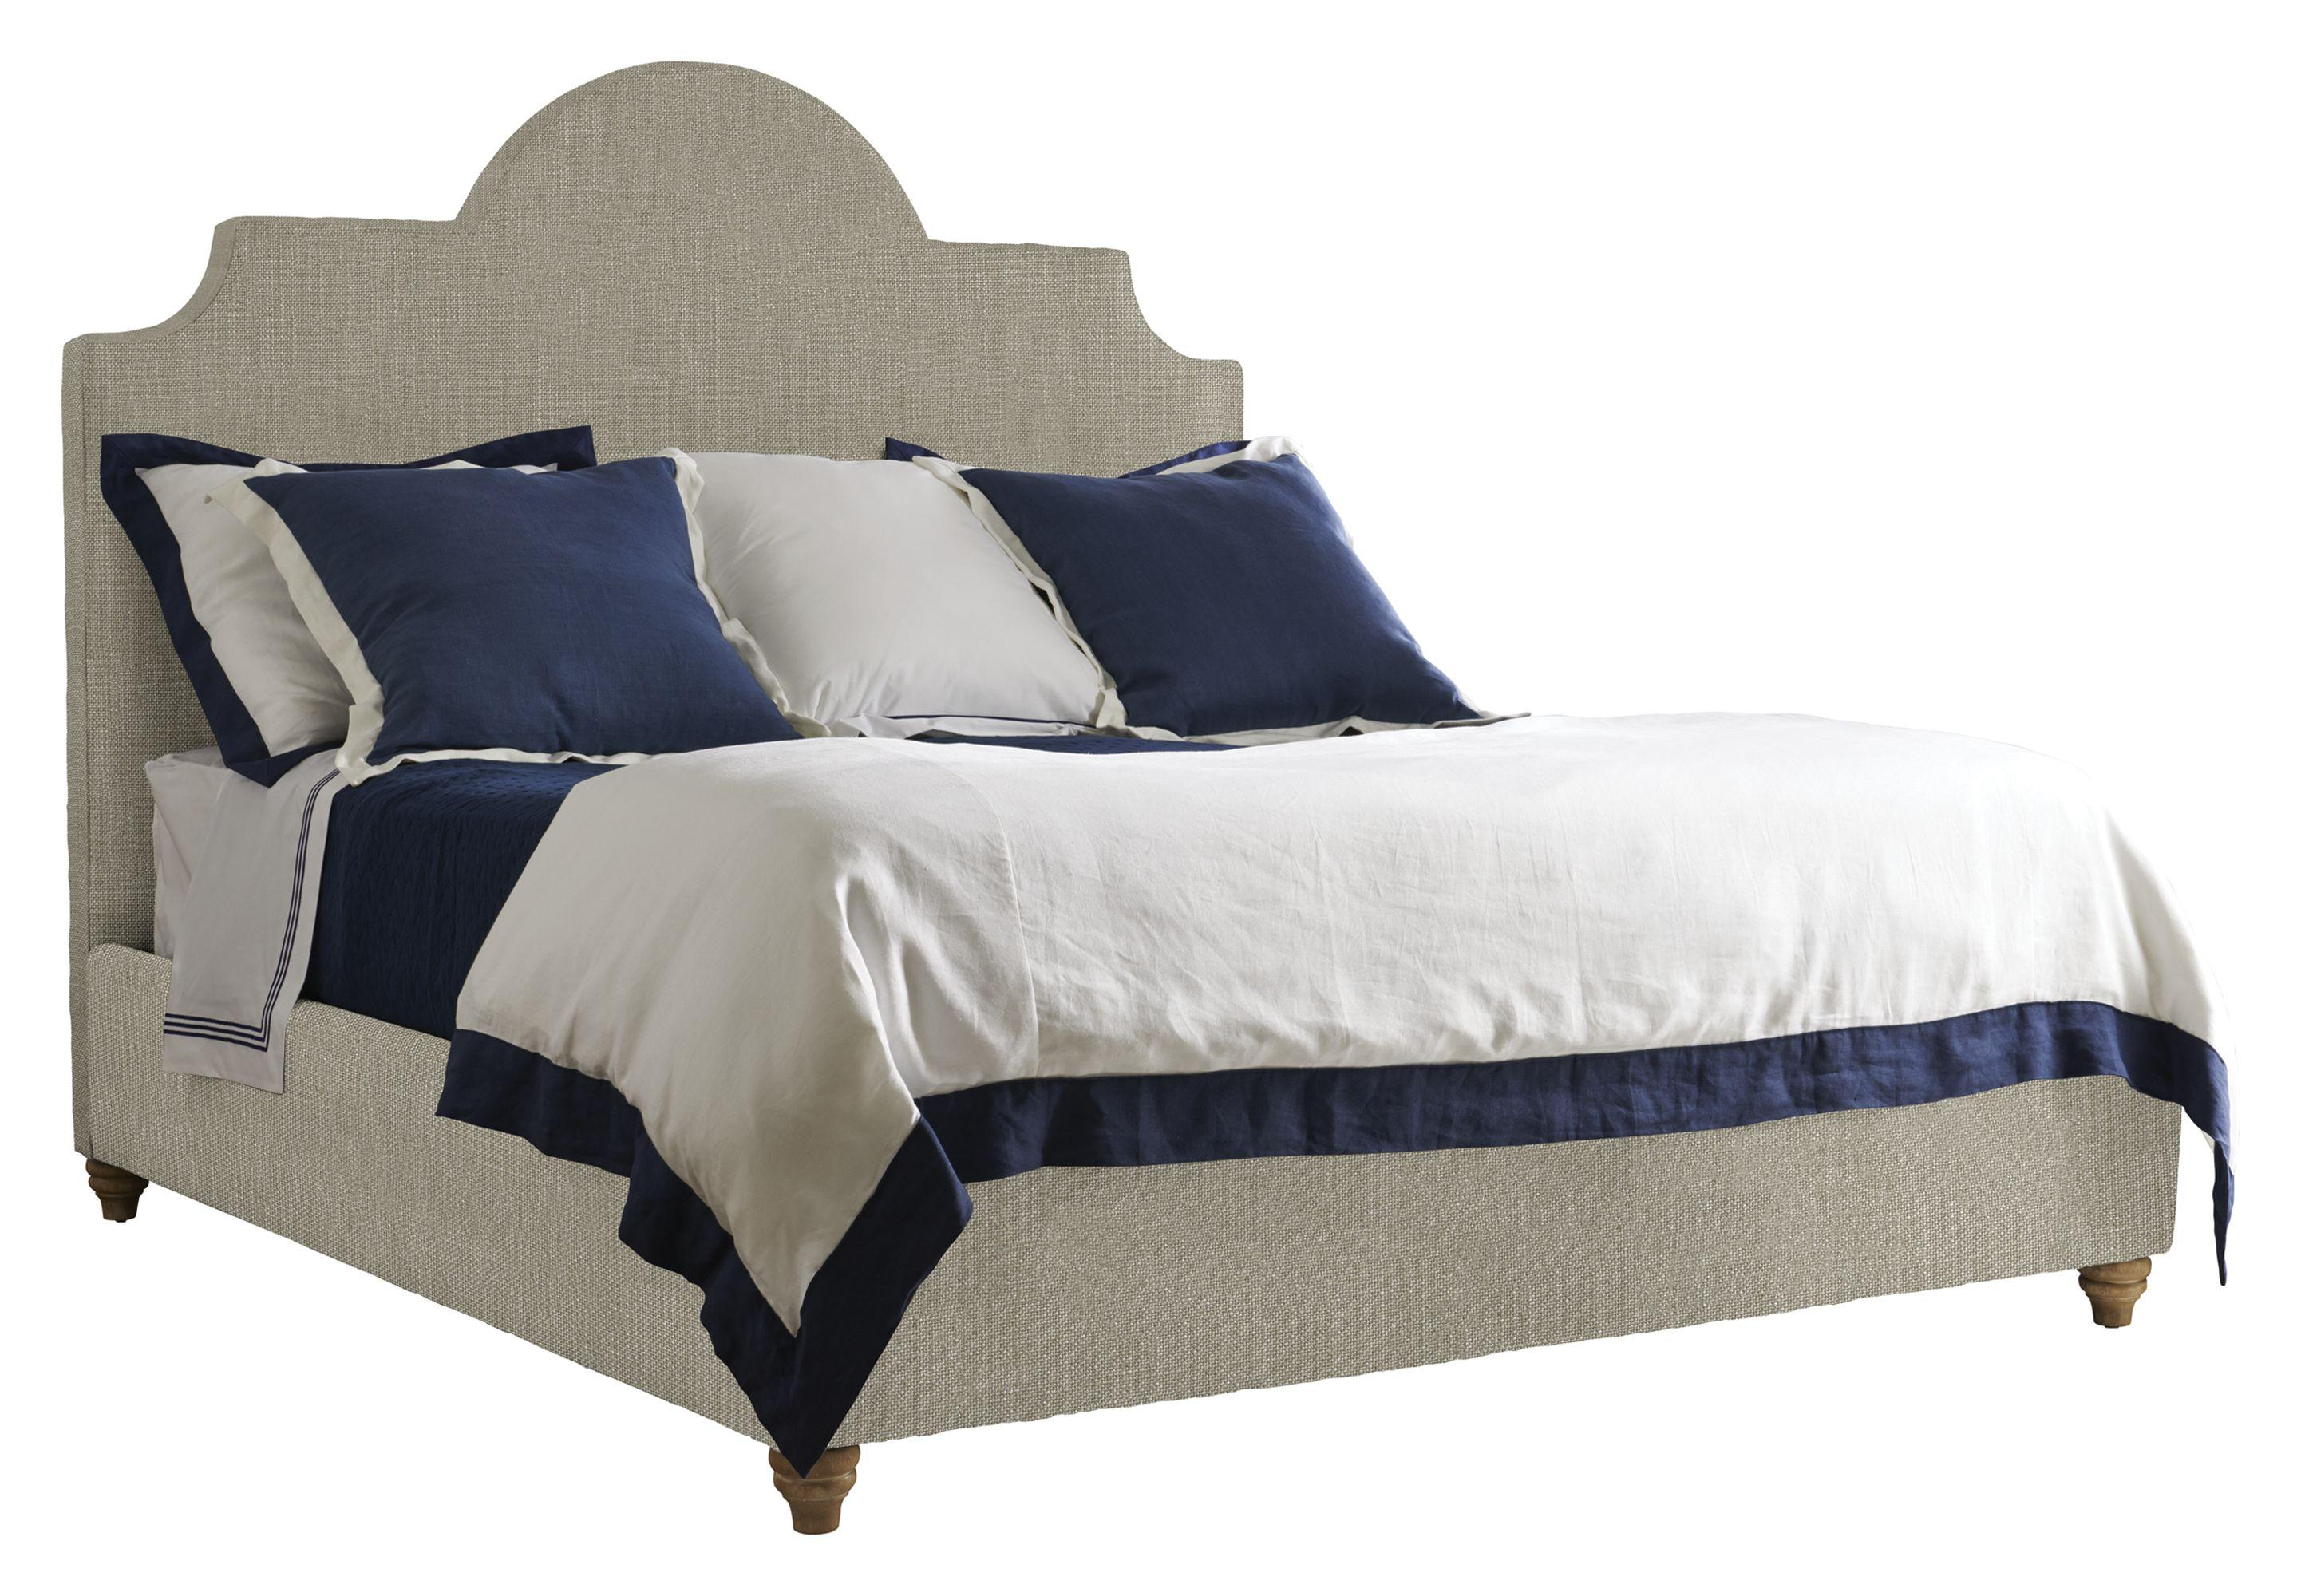 Stanley Furniture Coastal Living Retreat Queen Breach Inlet Bed - Item Number: 411-B3-52